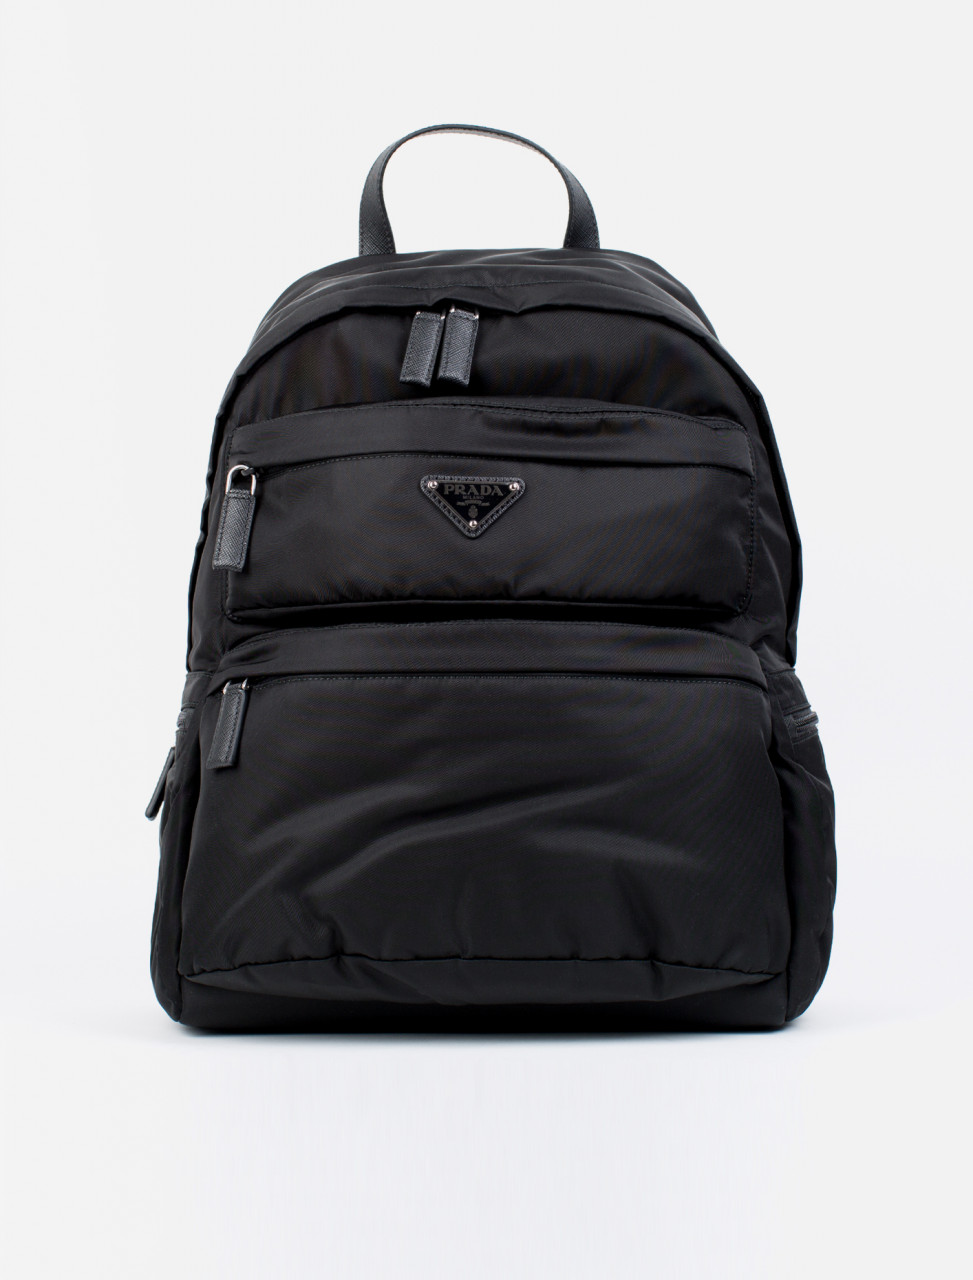 1dc43ef82f12 Prada Tessuto Montagna Nylon Backpack | Voo Store Berlin | Worldwide ...